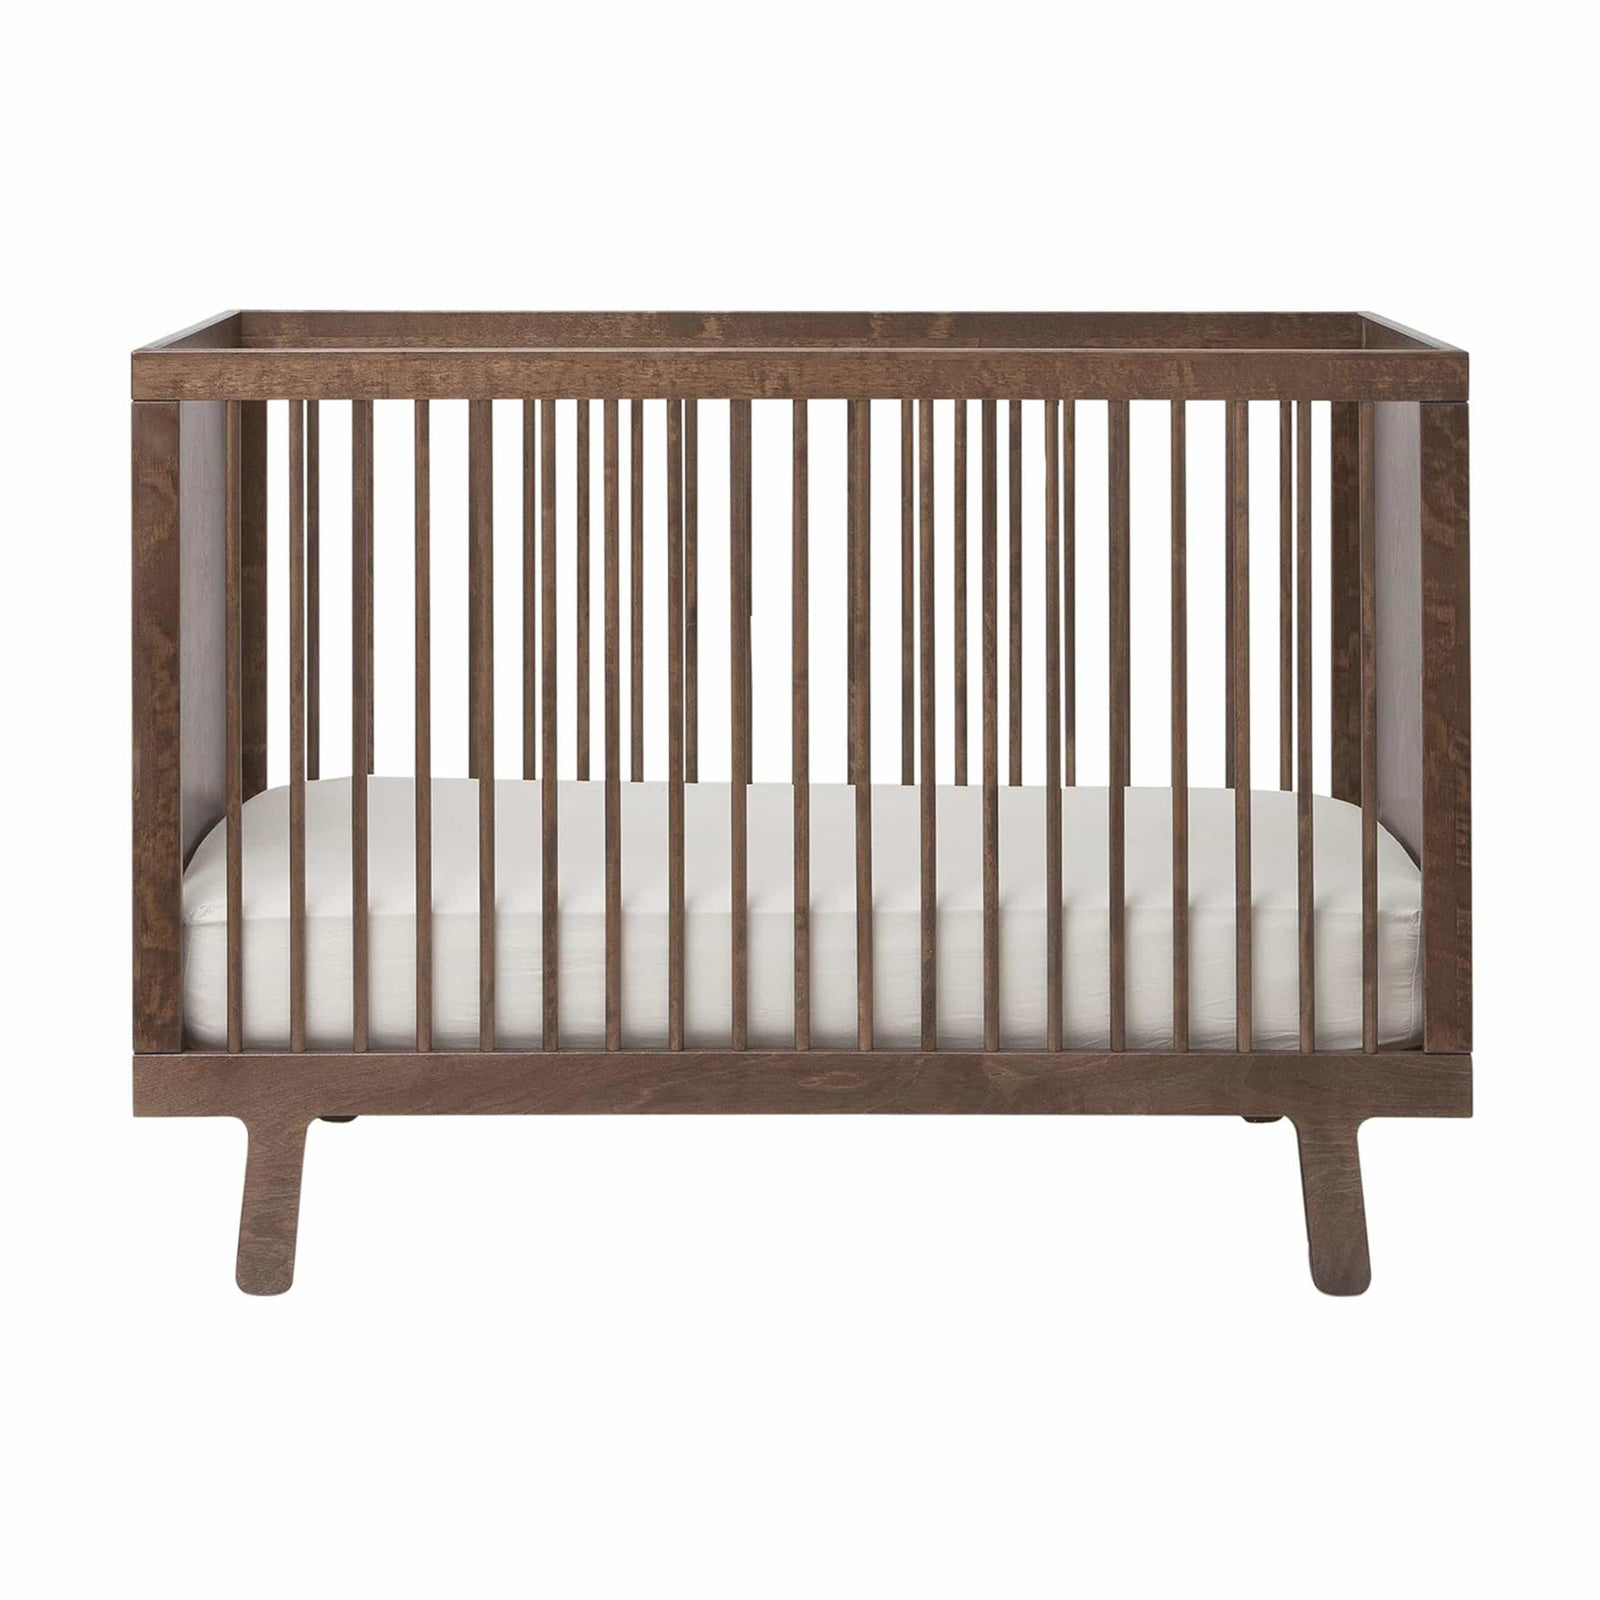 Oeuf Furniture Walnut Sparrow Crib